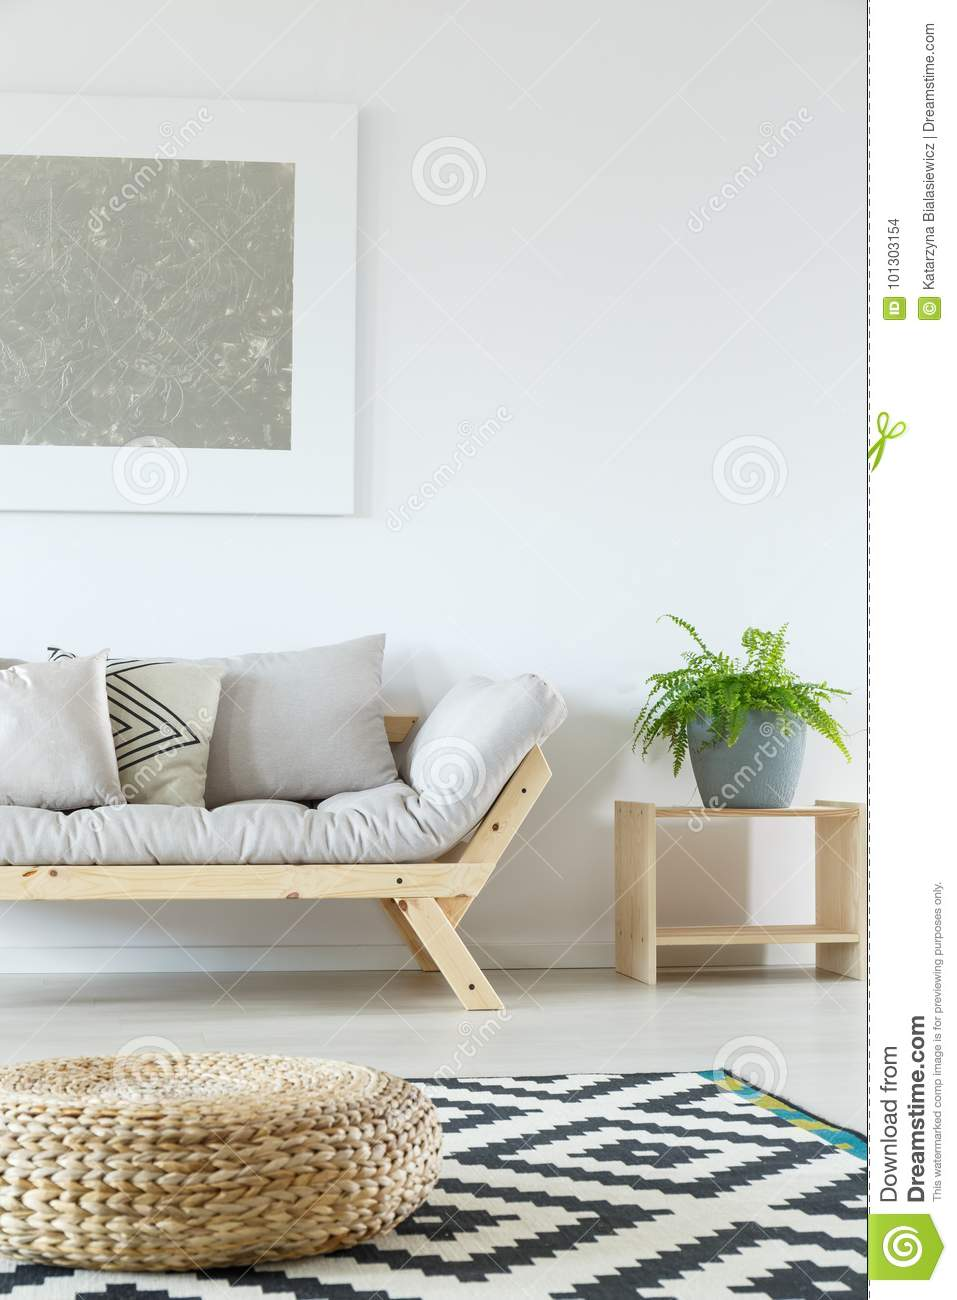 living room pouf pinterest curtains minimalist with stock photo image of beige loft